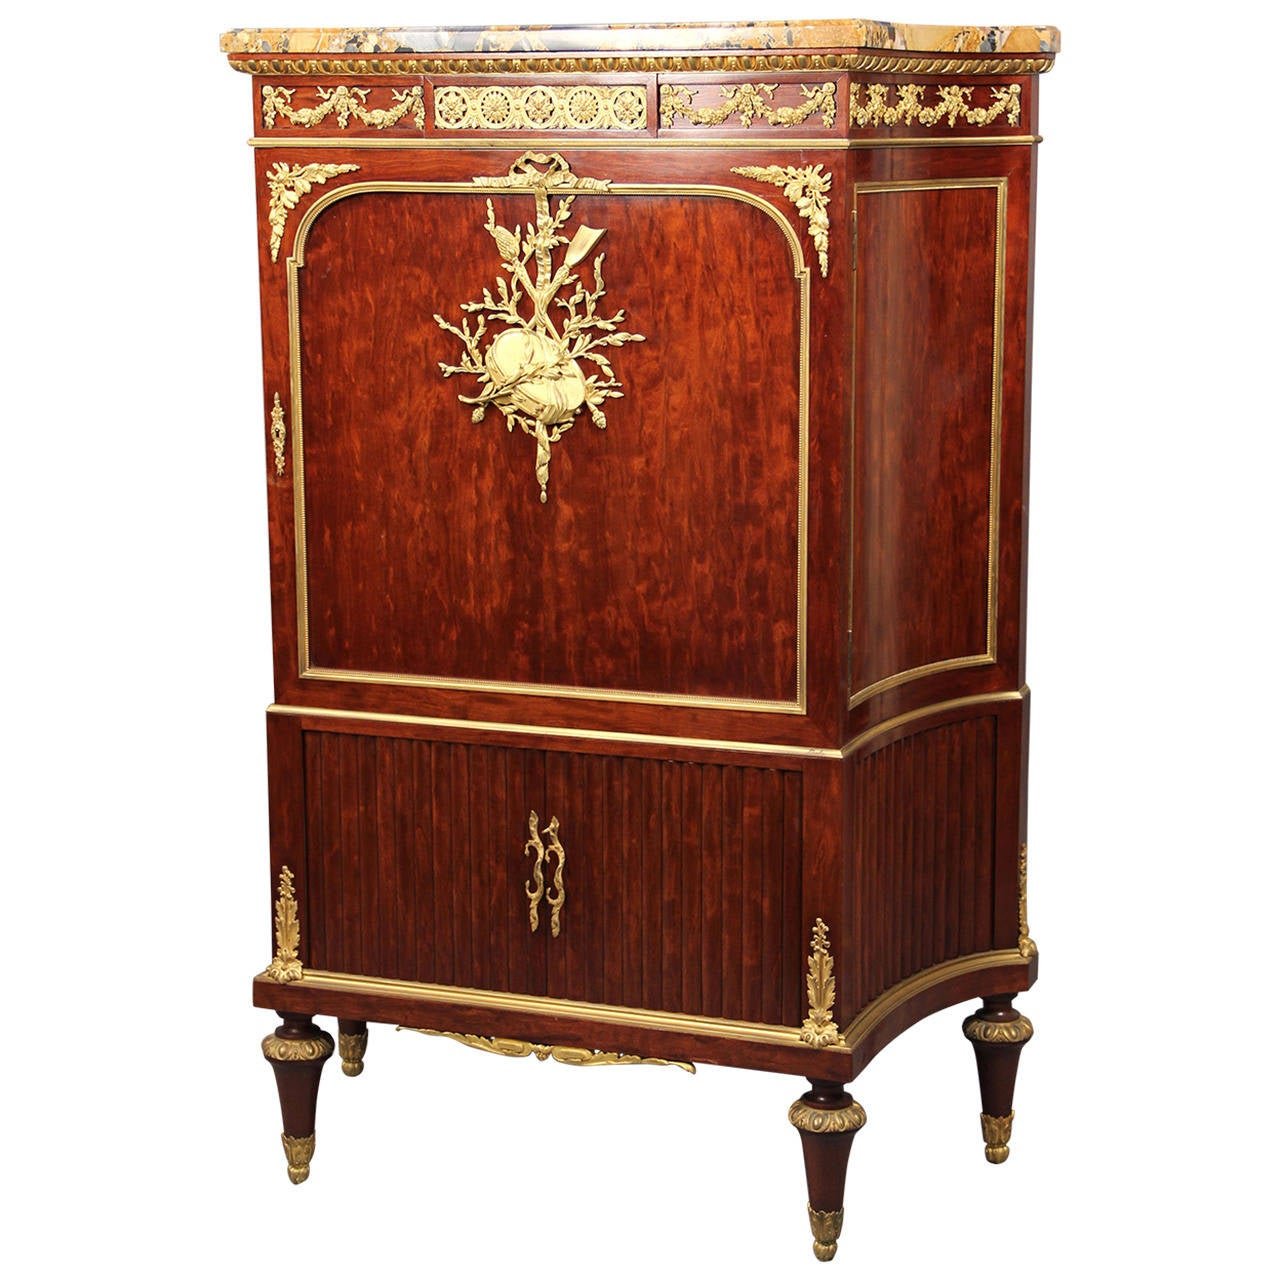 Late 19th Century Gilt Bronze-Mounted Cabinet by François Linke